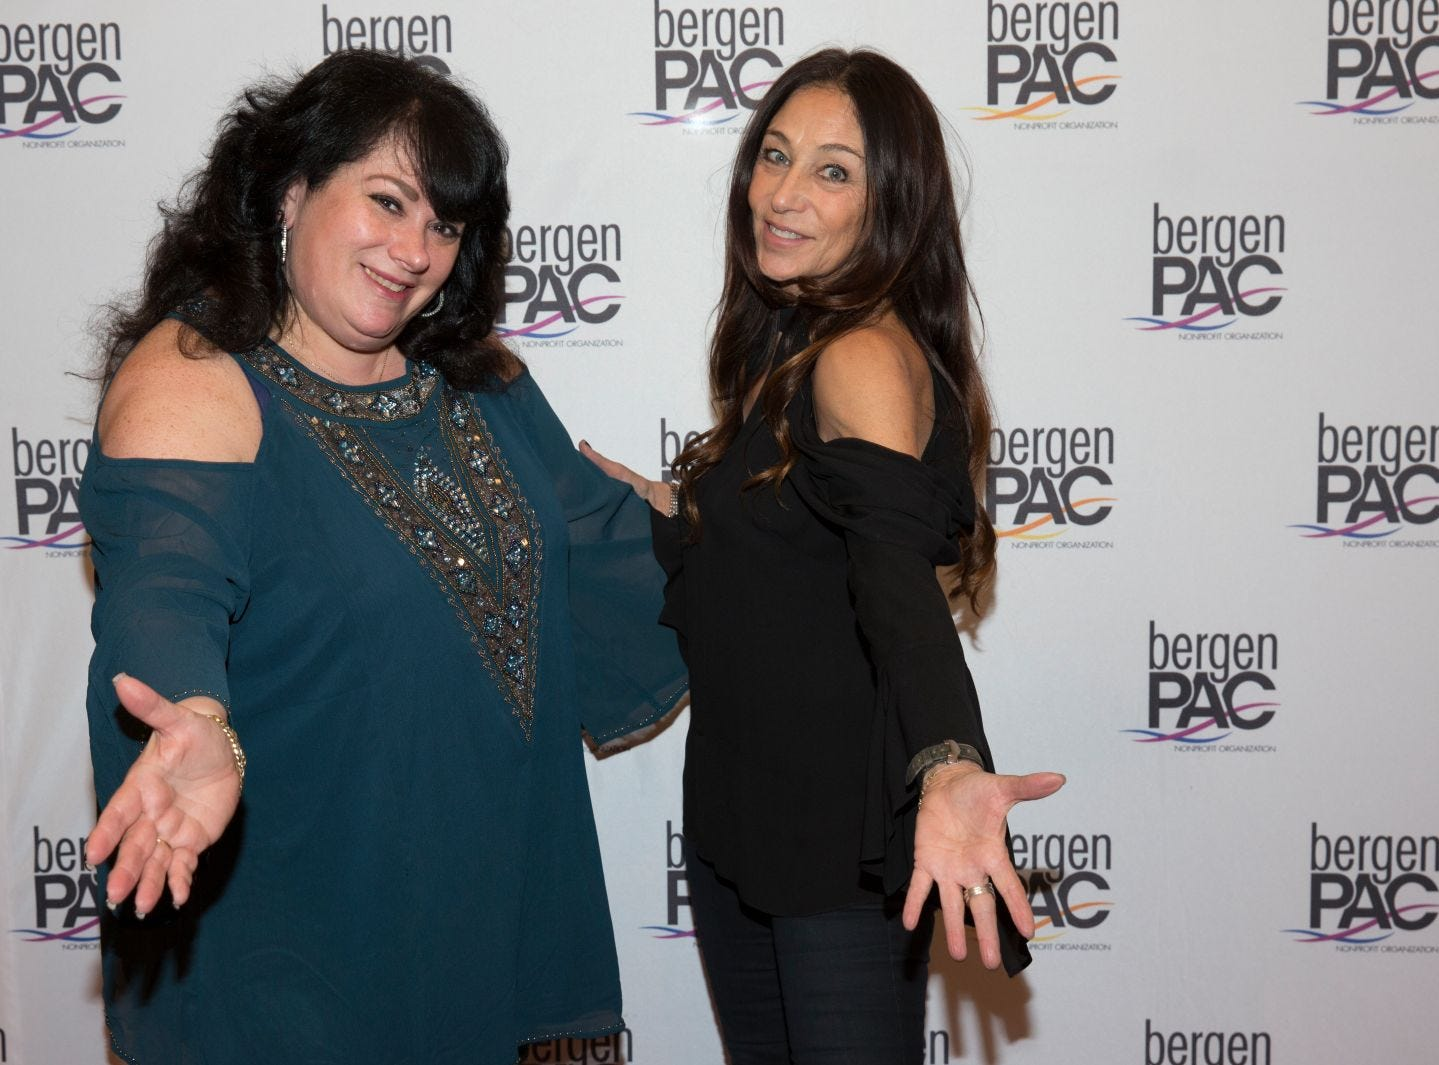 Arlene Grunfeld, Roberta Mathes. BergenPAC held its annual fall gala featuring John Fogerty in Englewood. This year's honoree was Fernando Garip, from Wilmington Trust and M&T Bank. 11/08/2018